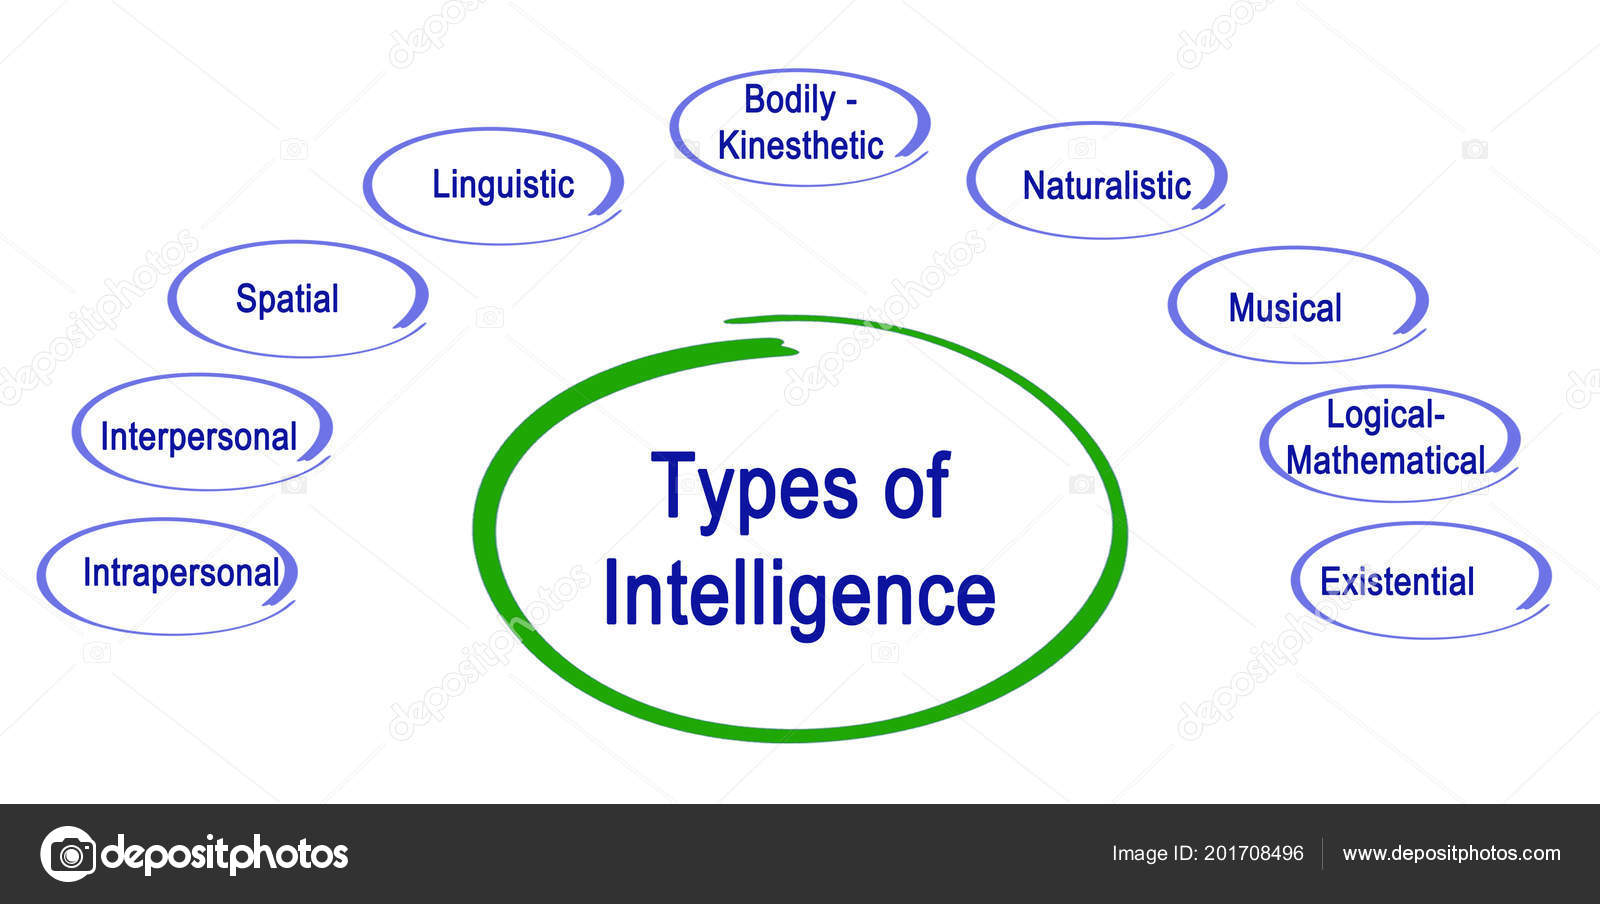 an analysis of different types of intelligences The theory of multiple intelligences was developed in 1983 by dr howard gardner, professor of education at harvard university it suggests that the traditional notion of intelligence, based on iq testing, is far too limited.